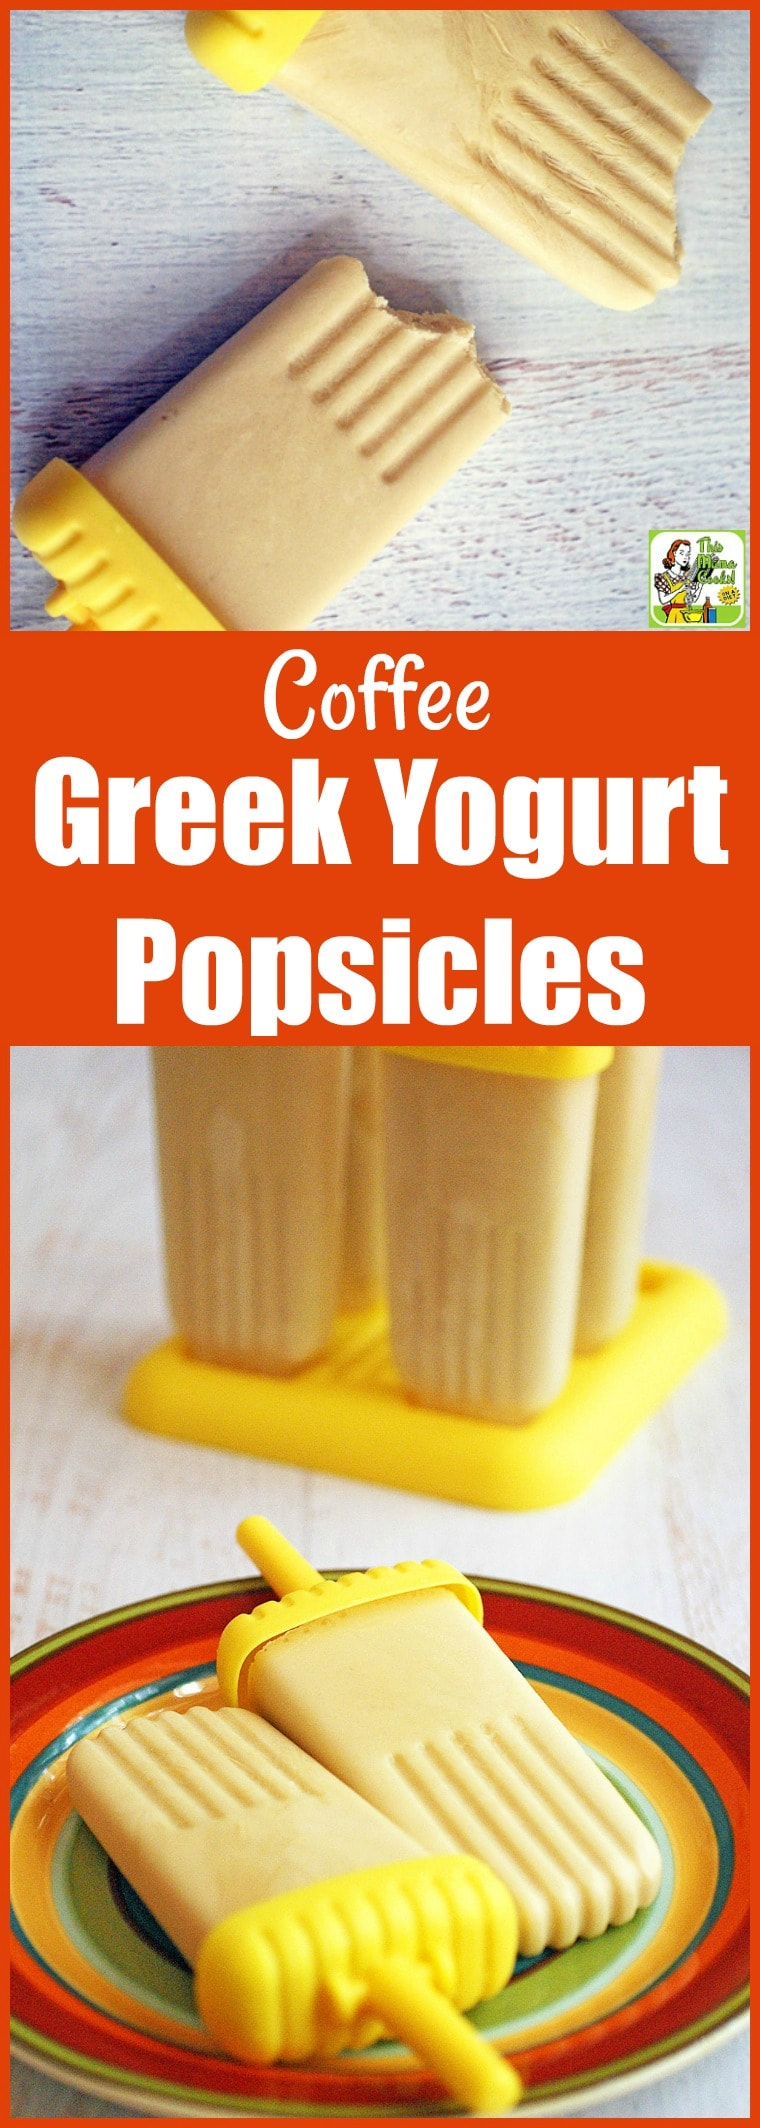 How about making some Greek Yogurt Popsicles? This homemade yogurt popsicle recipe is a thrifty way to use leftover coffee. These frozen pops are packed with protein making them a terrific snack! #recipes #easy #recipeoftheday #glutenfree #easyrecipe #easyrecipes #glutenfreerecipe #snacks #desserts #dessertrecipes #dessertideas #yogurt #coffee #coffeeaddict